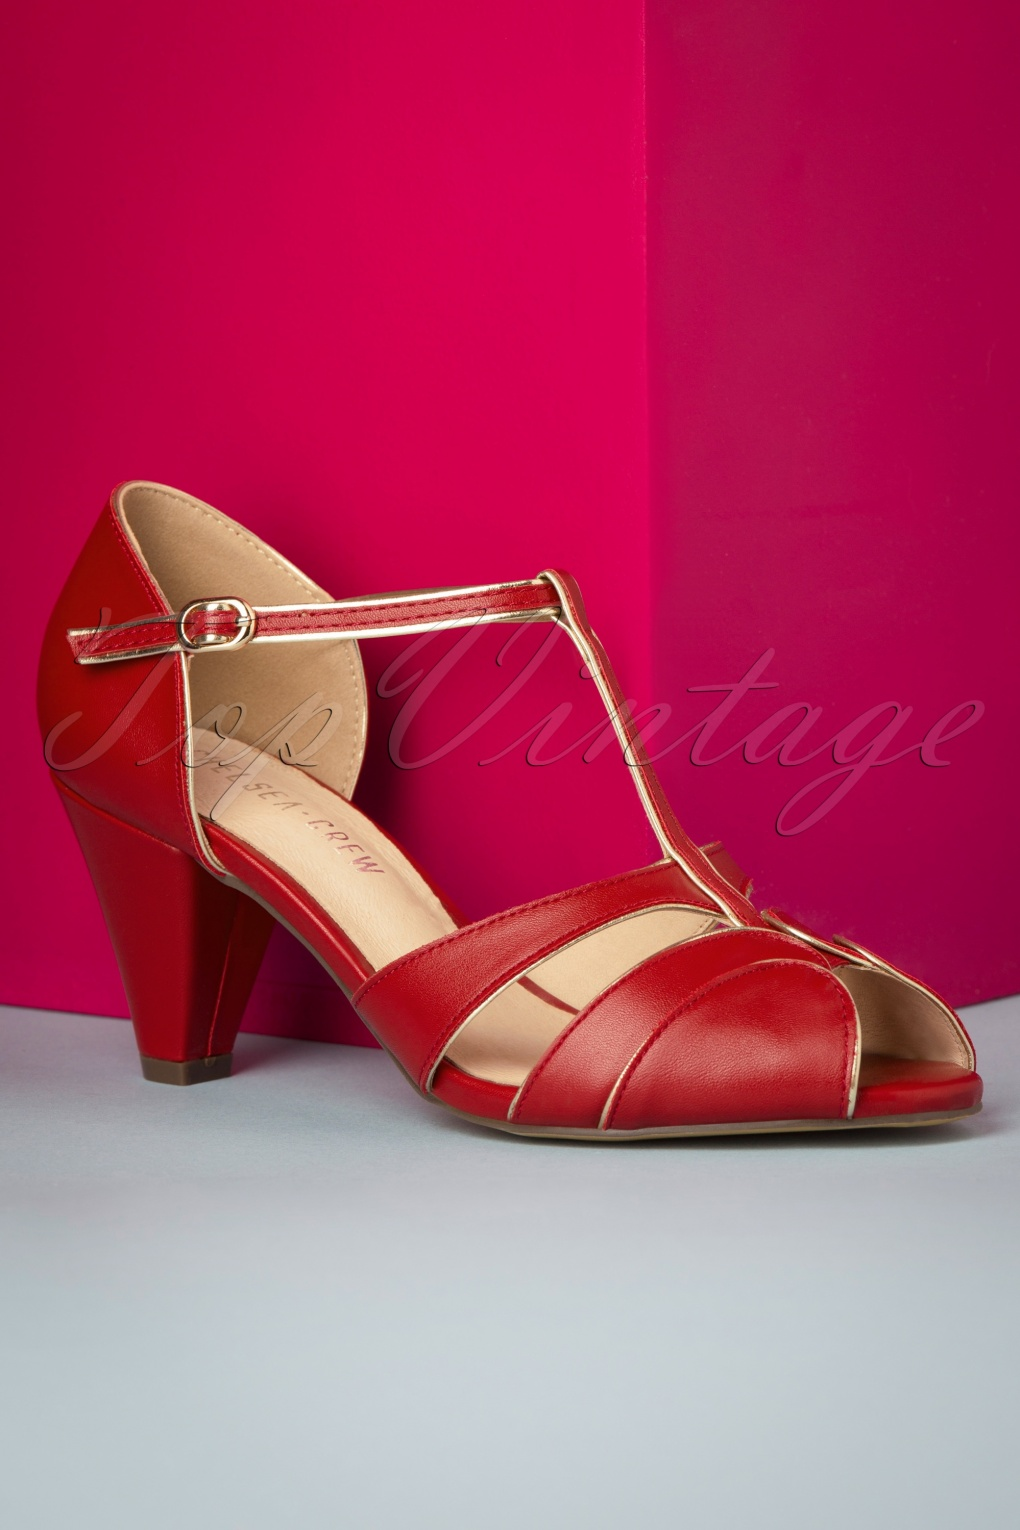 What Did Women Wear in the 1950s? 1950s Fashion Guide 40s Penelope Peeptoe Pumps in Red £24.95 AT vintagedancer.com